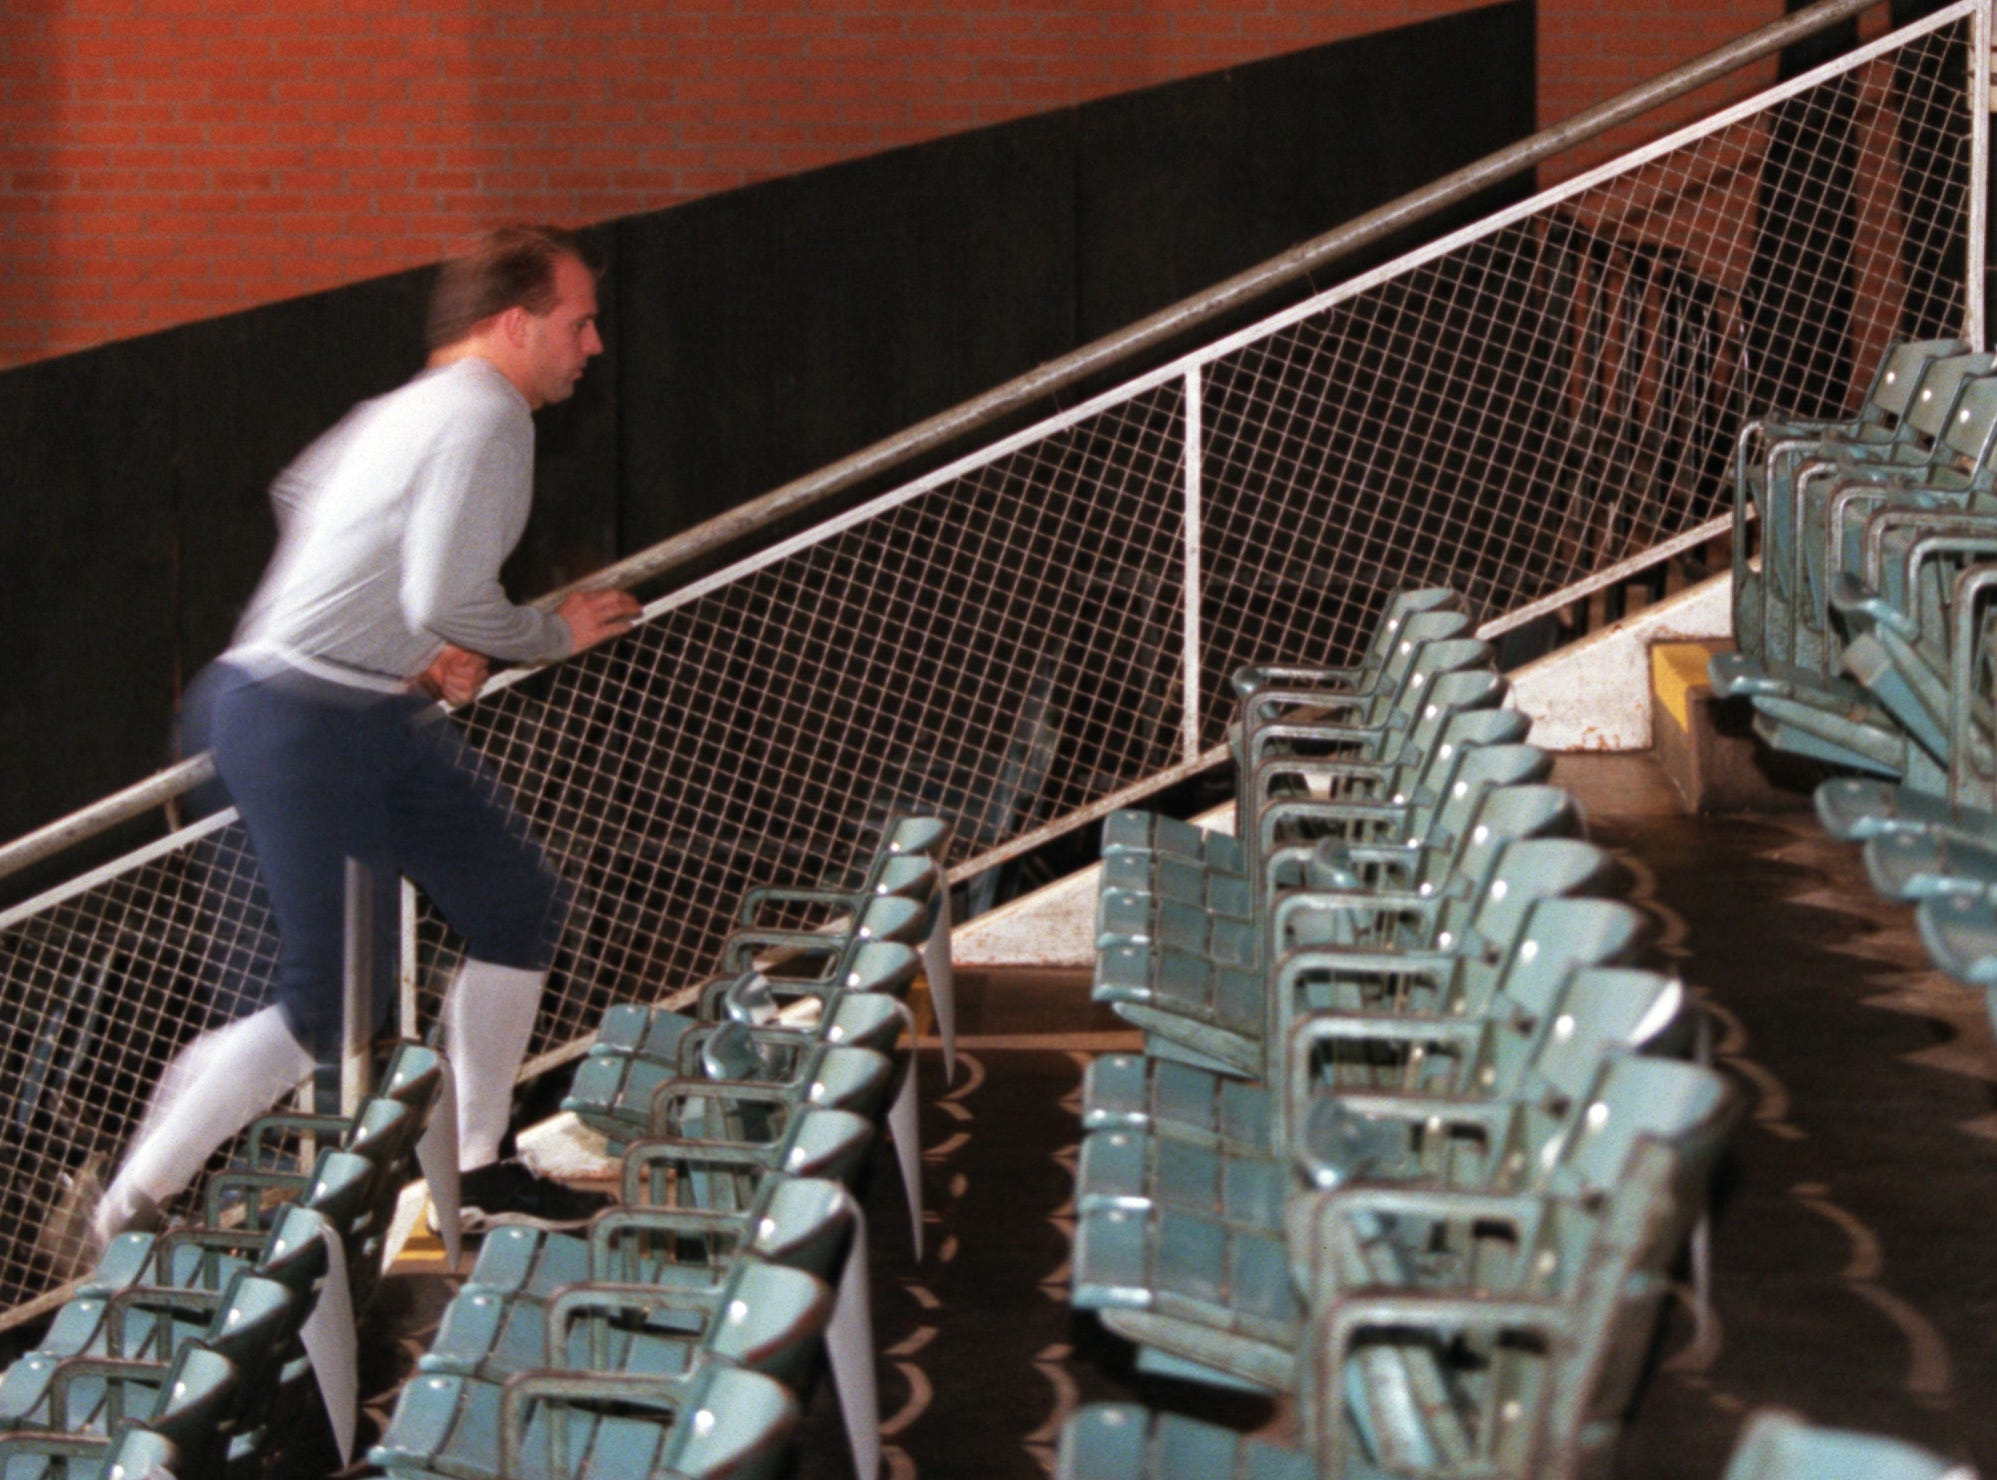 Iceray head coach Taylor Hall runs up the stairs at the Memorial Coliseum in February 2000. The IceRays used to play in the coliseum before moving to the American Bank Center in 2004.